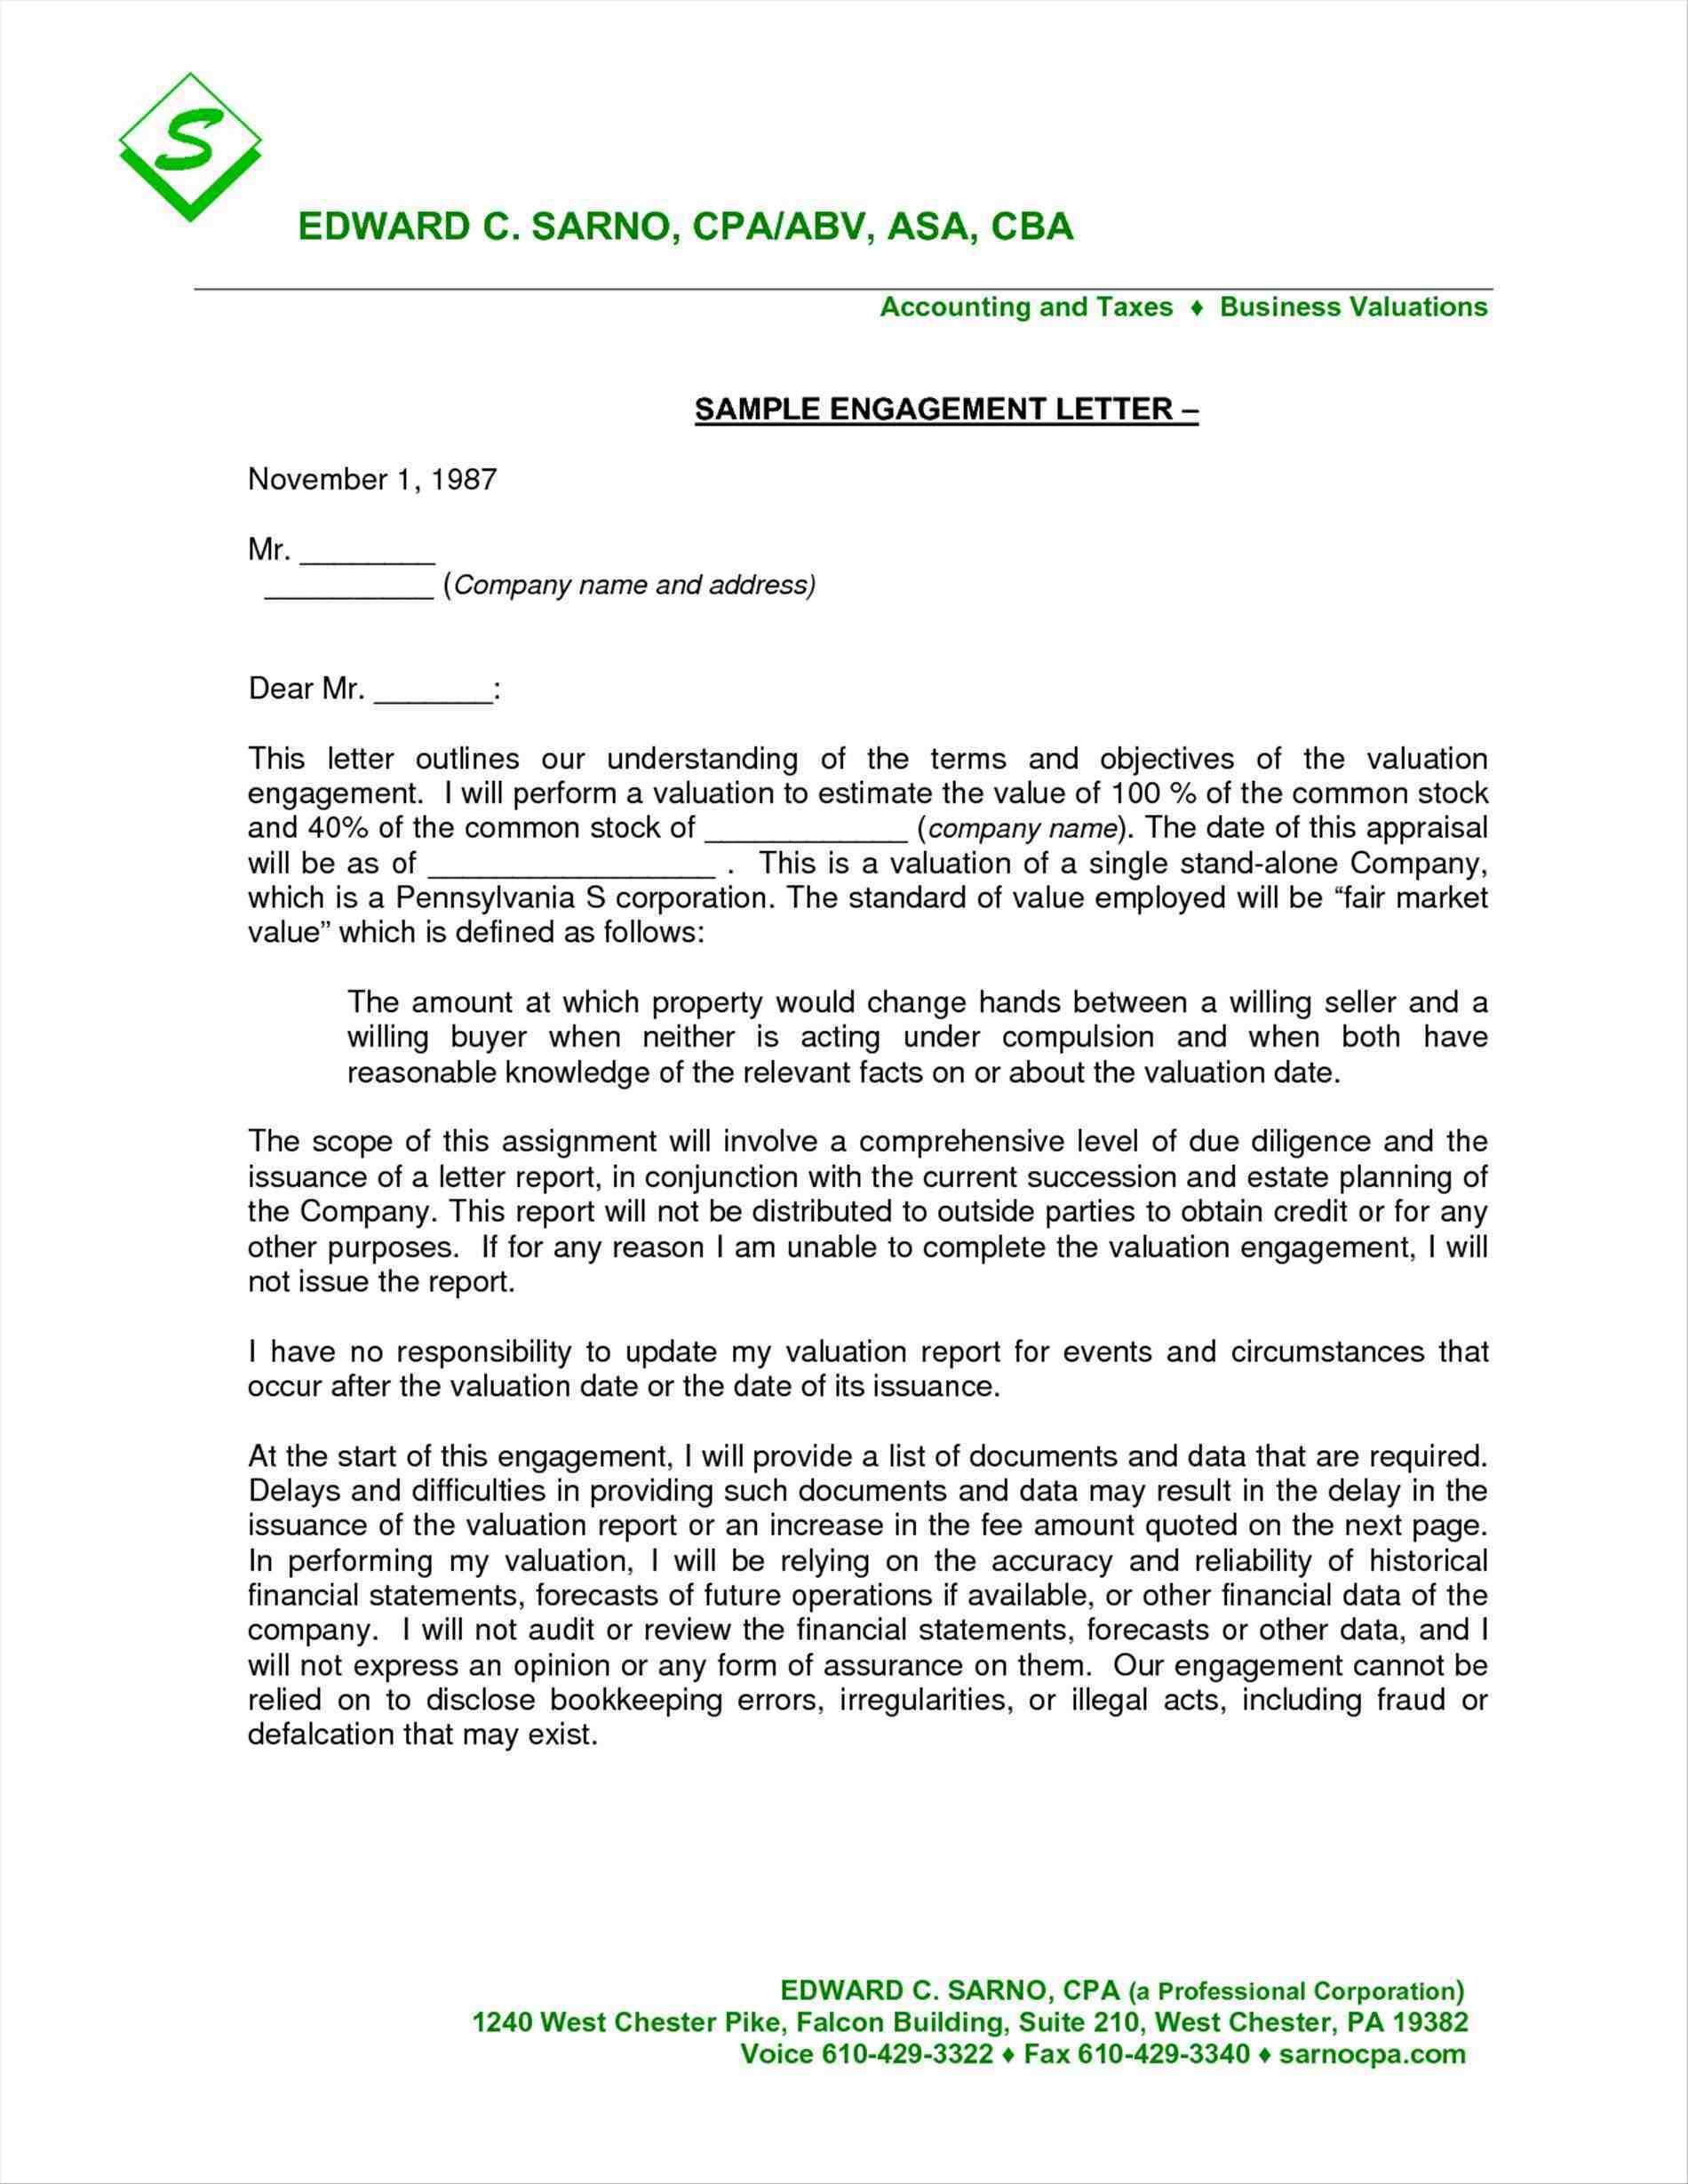 Business Valuation Engagement Letter Template Examples | Letter